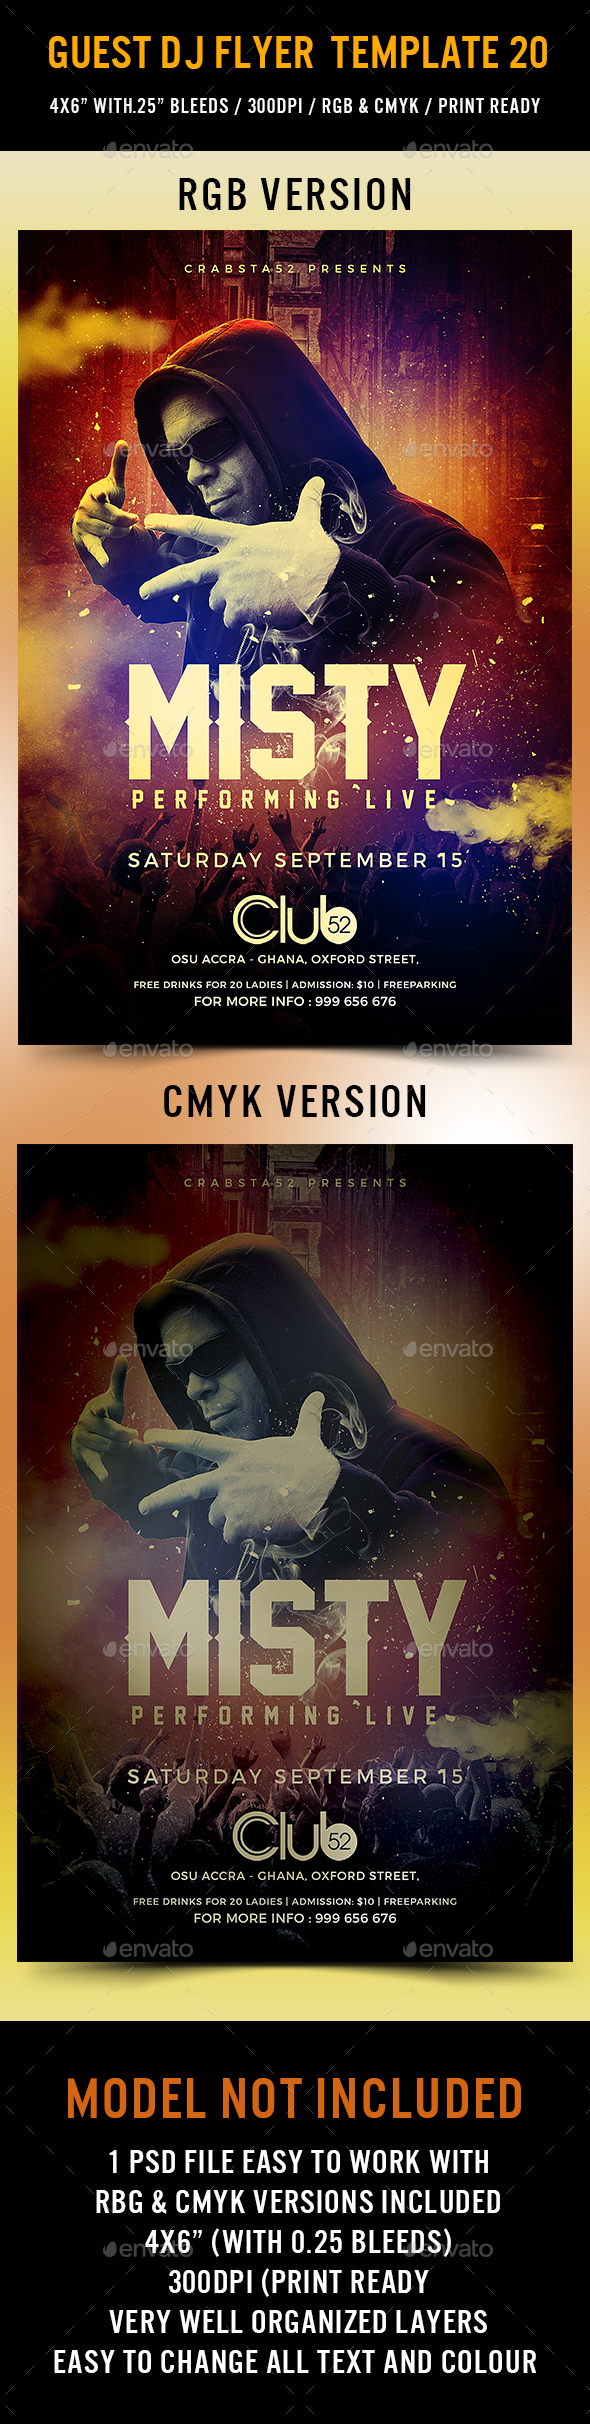 GraphicRiver Guest DJ Flyer Template 20 20487183